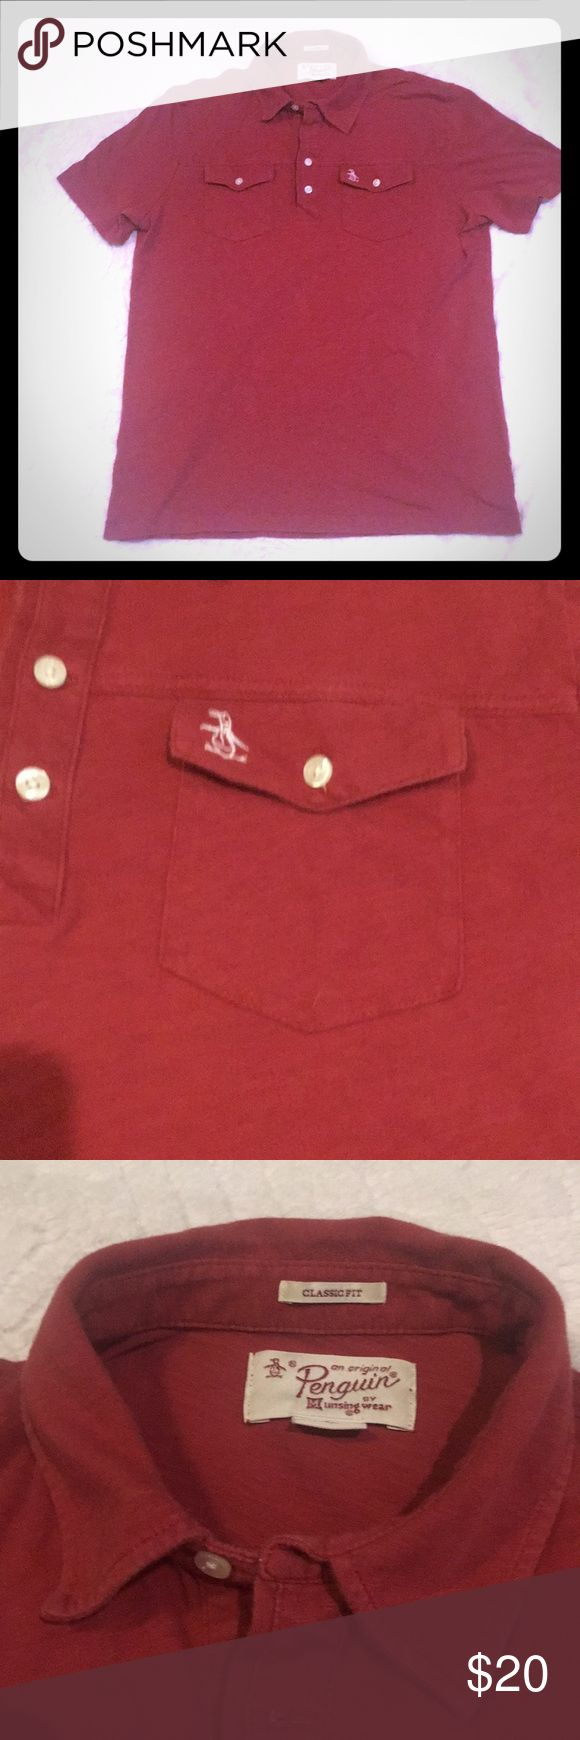 Men's Penguin Polo Shirt Men's Penguin brand polo shirt.  Size medium.  Used but no flaws.  Maroon color. Quick shipping! Original Penguin Shirts Polos